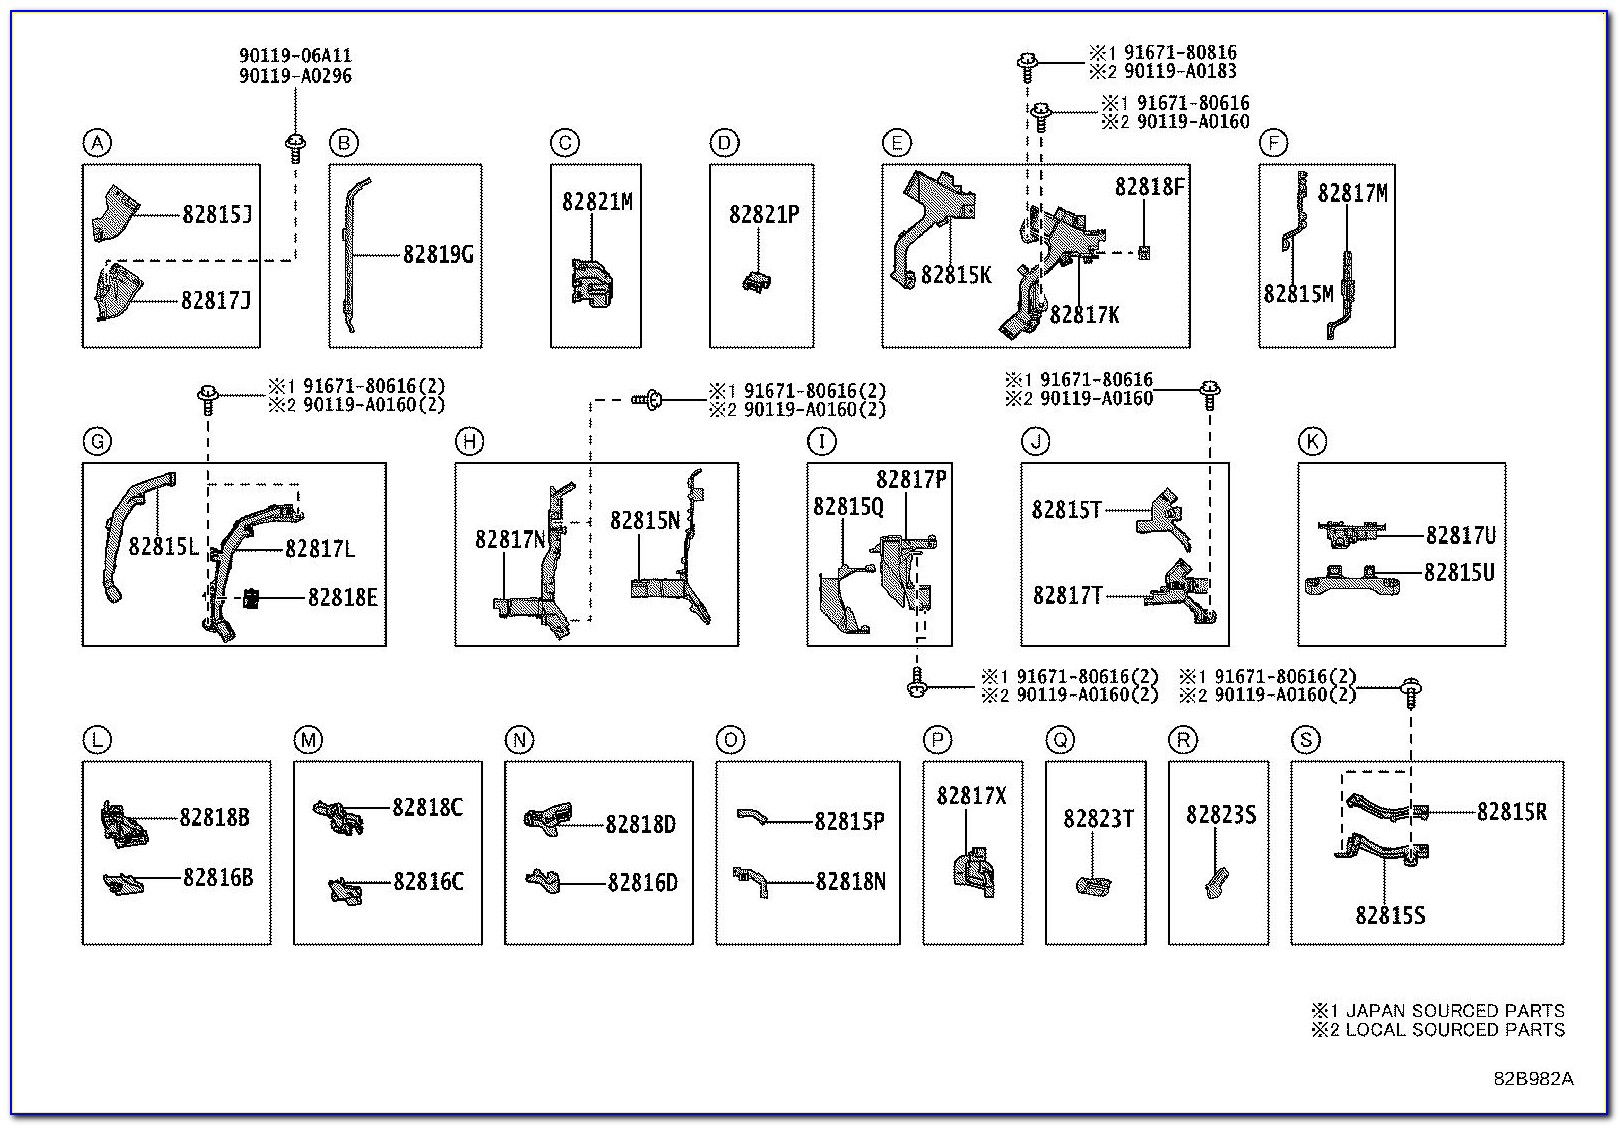 1997 Jeep Grand Cherokee Front Suspension Diagram